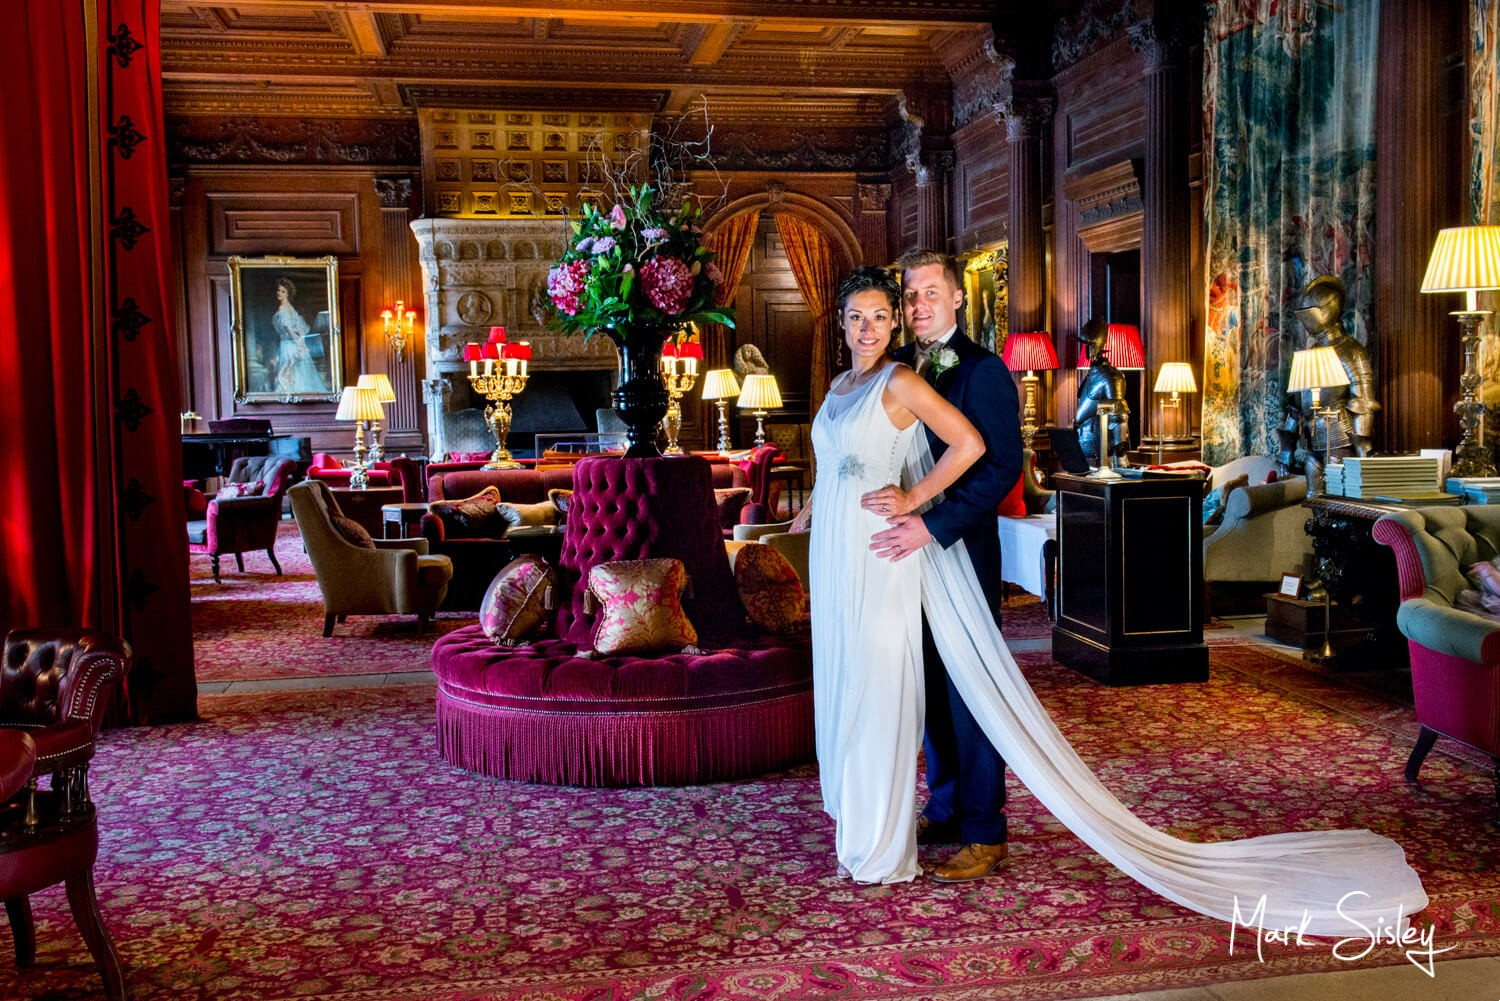 Cliveden House wedding photography blog - the newlyweds in the Great Hall